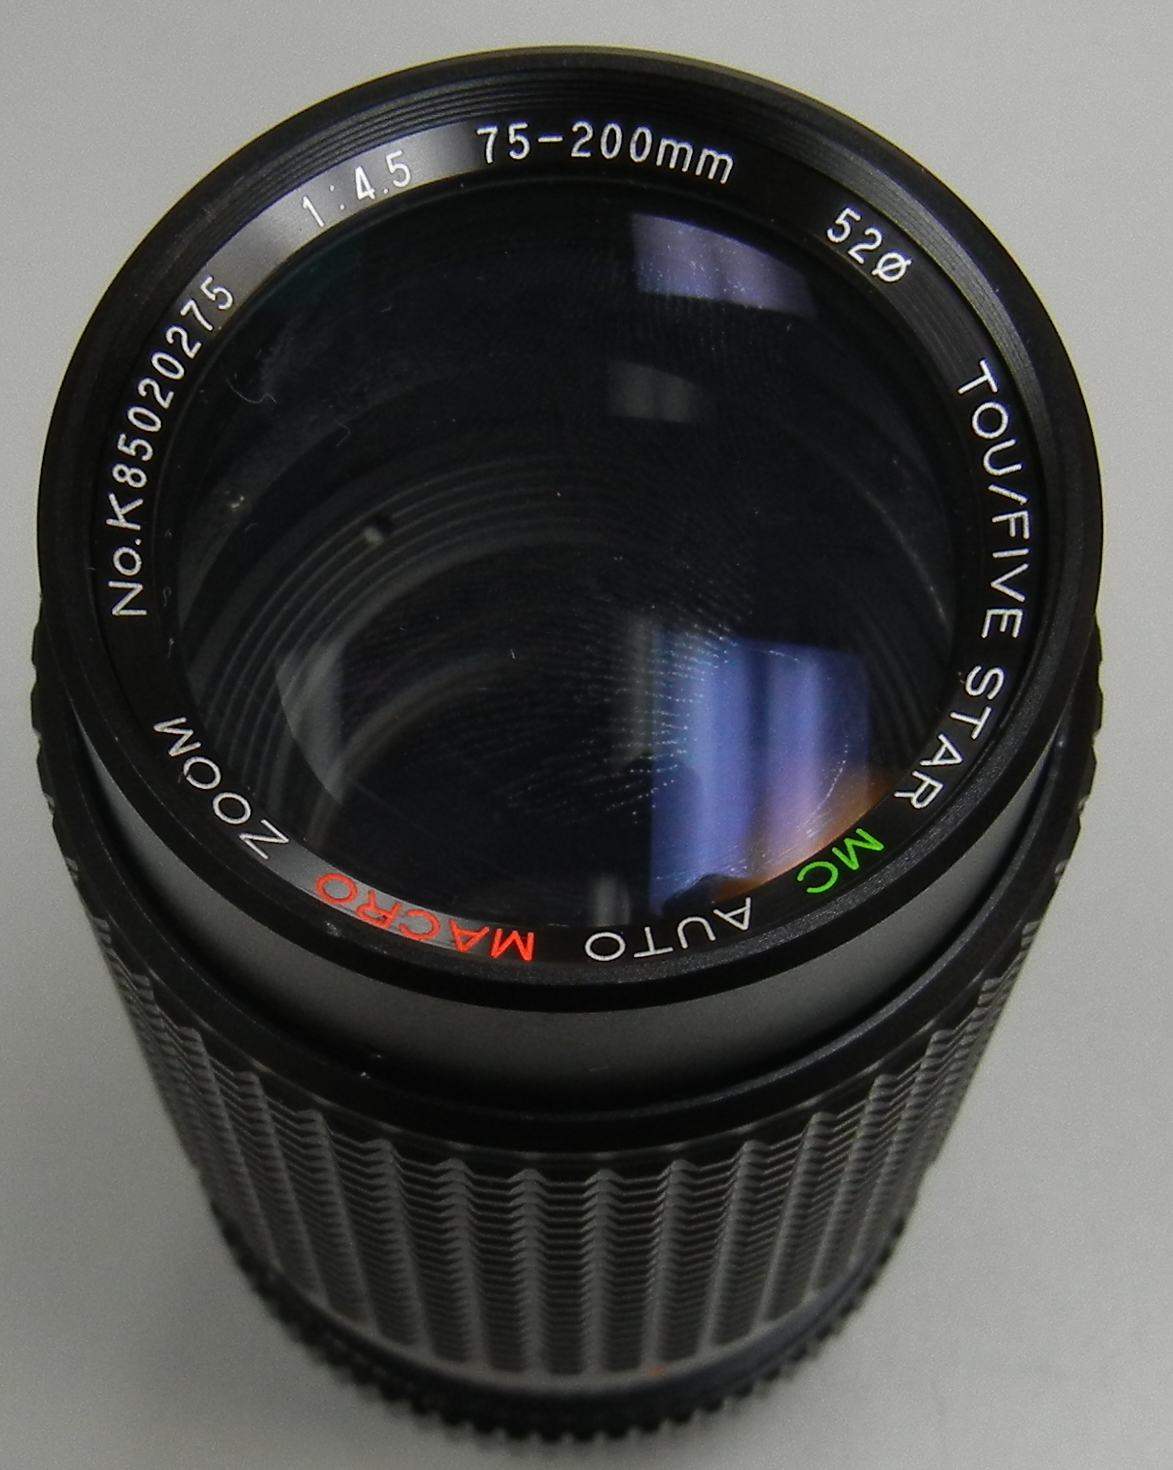 TOU/FIVE - MC AUTO MACRO 1:45 75-200MM CAMERA LENS